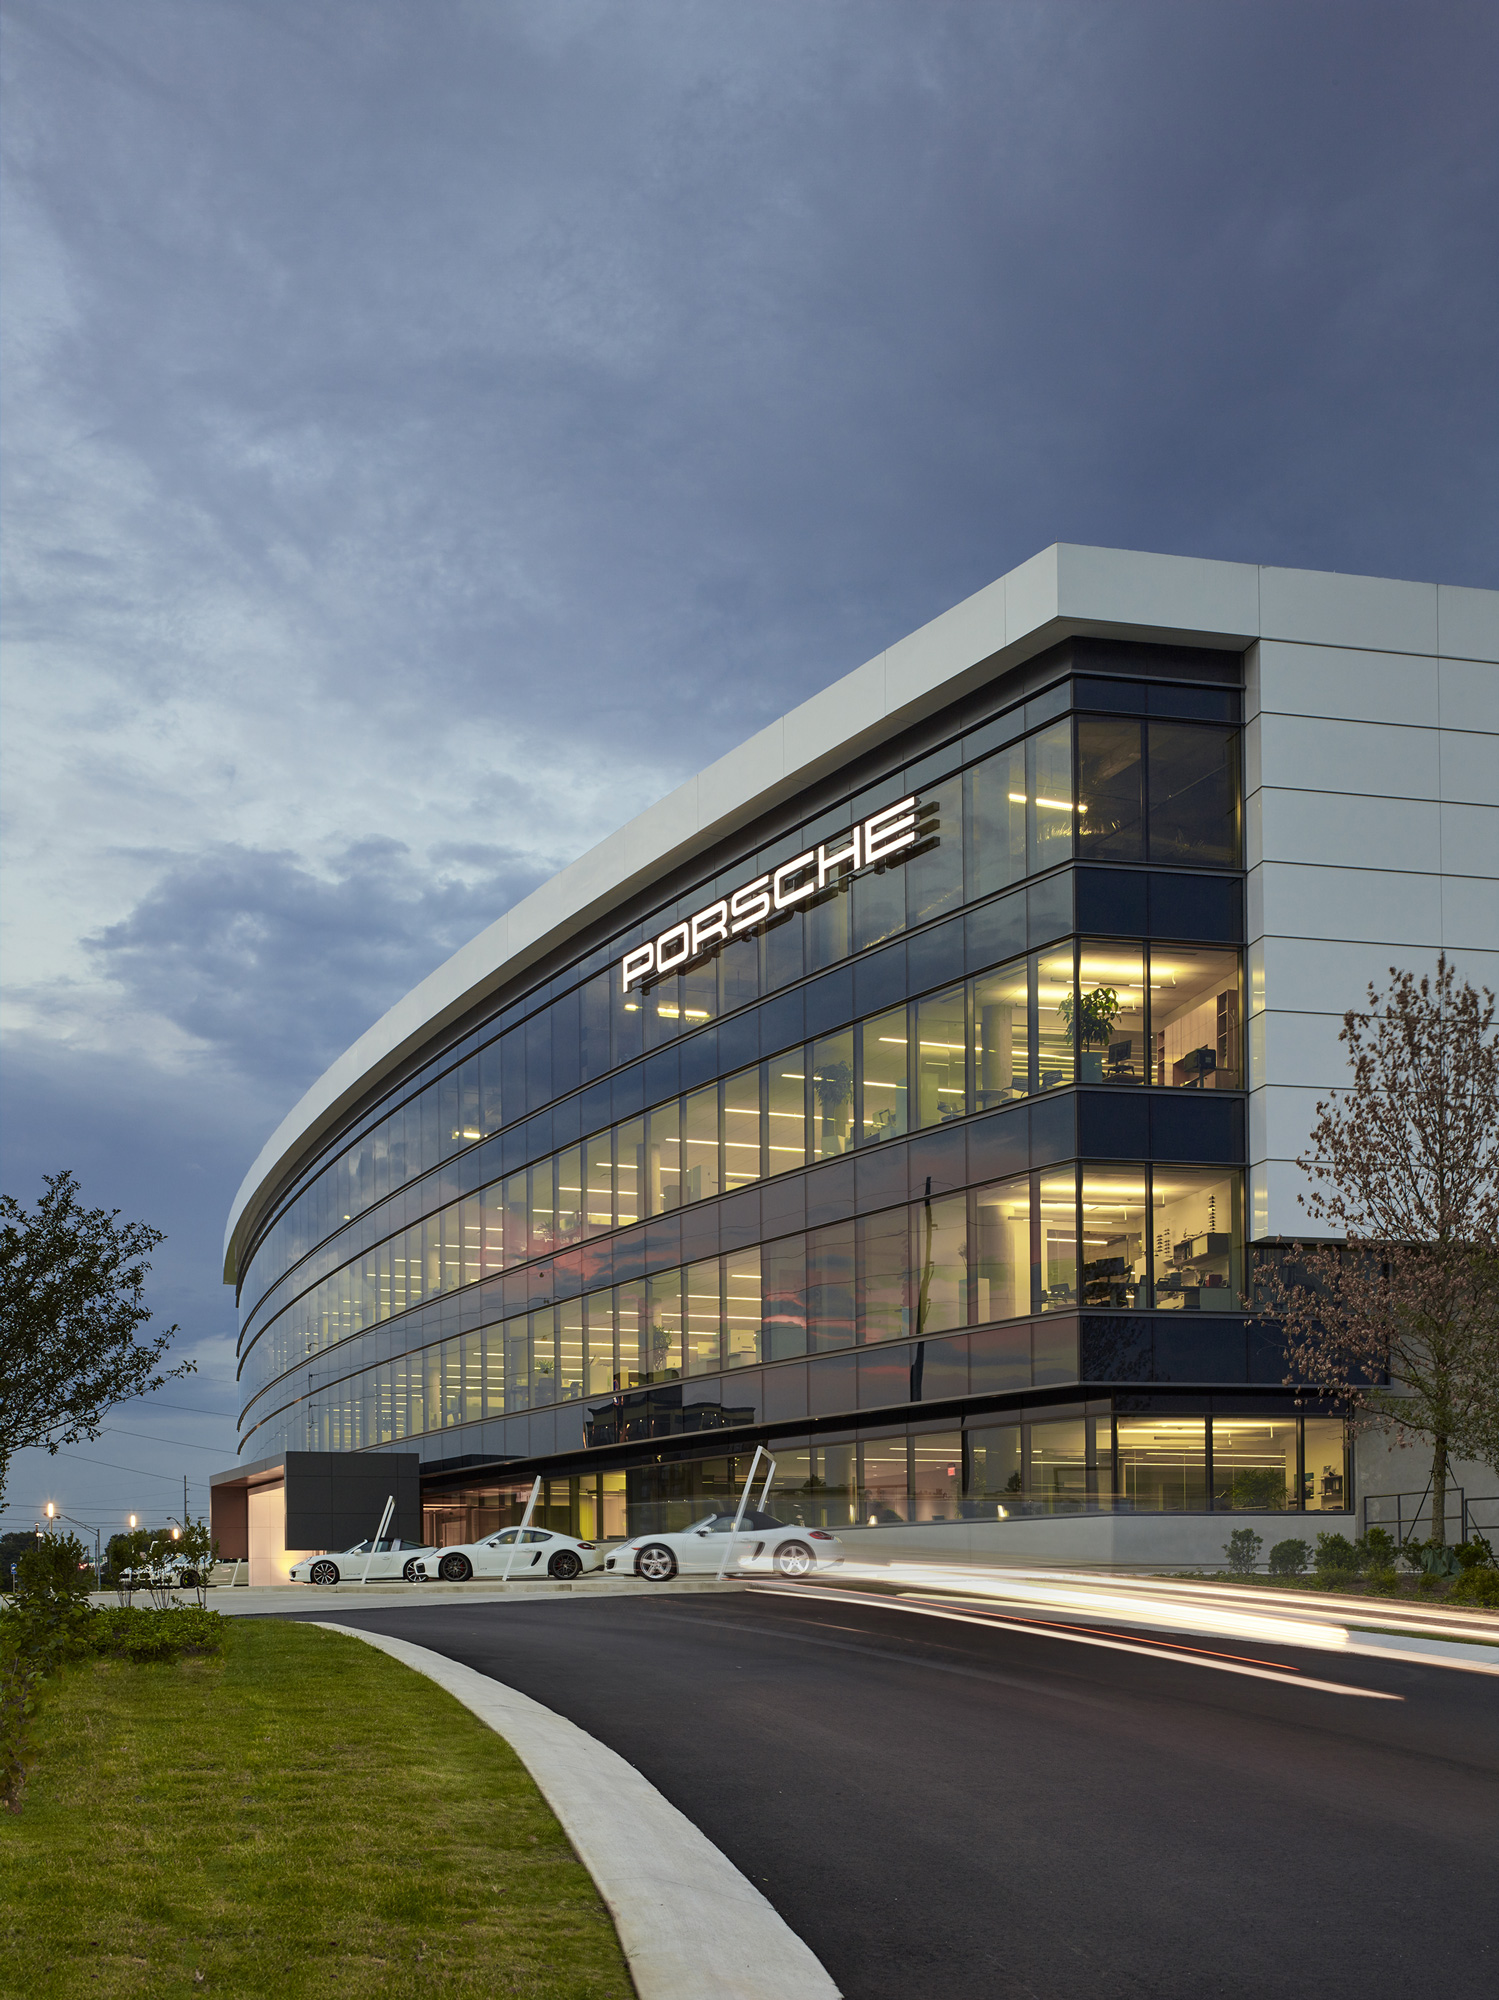 Porsche Cars North America Experience Center and Headquarters